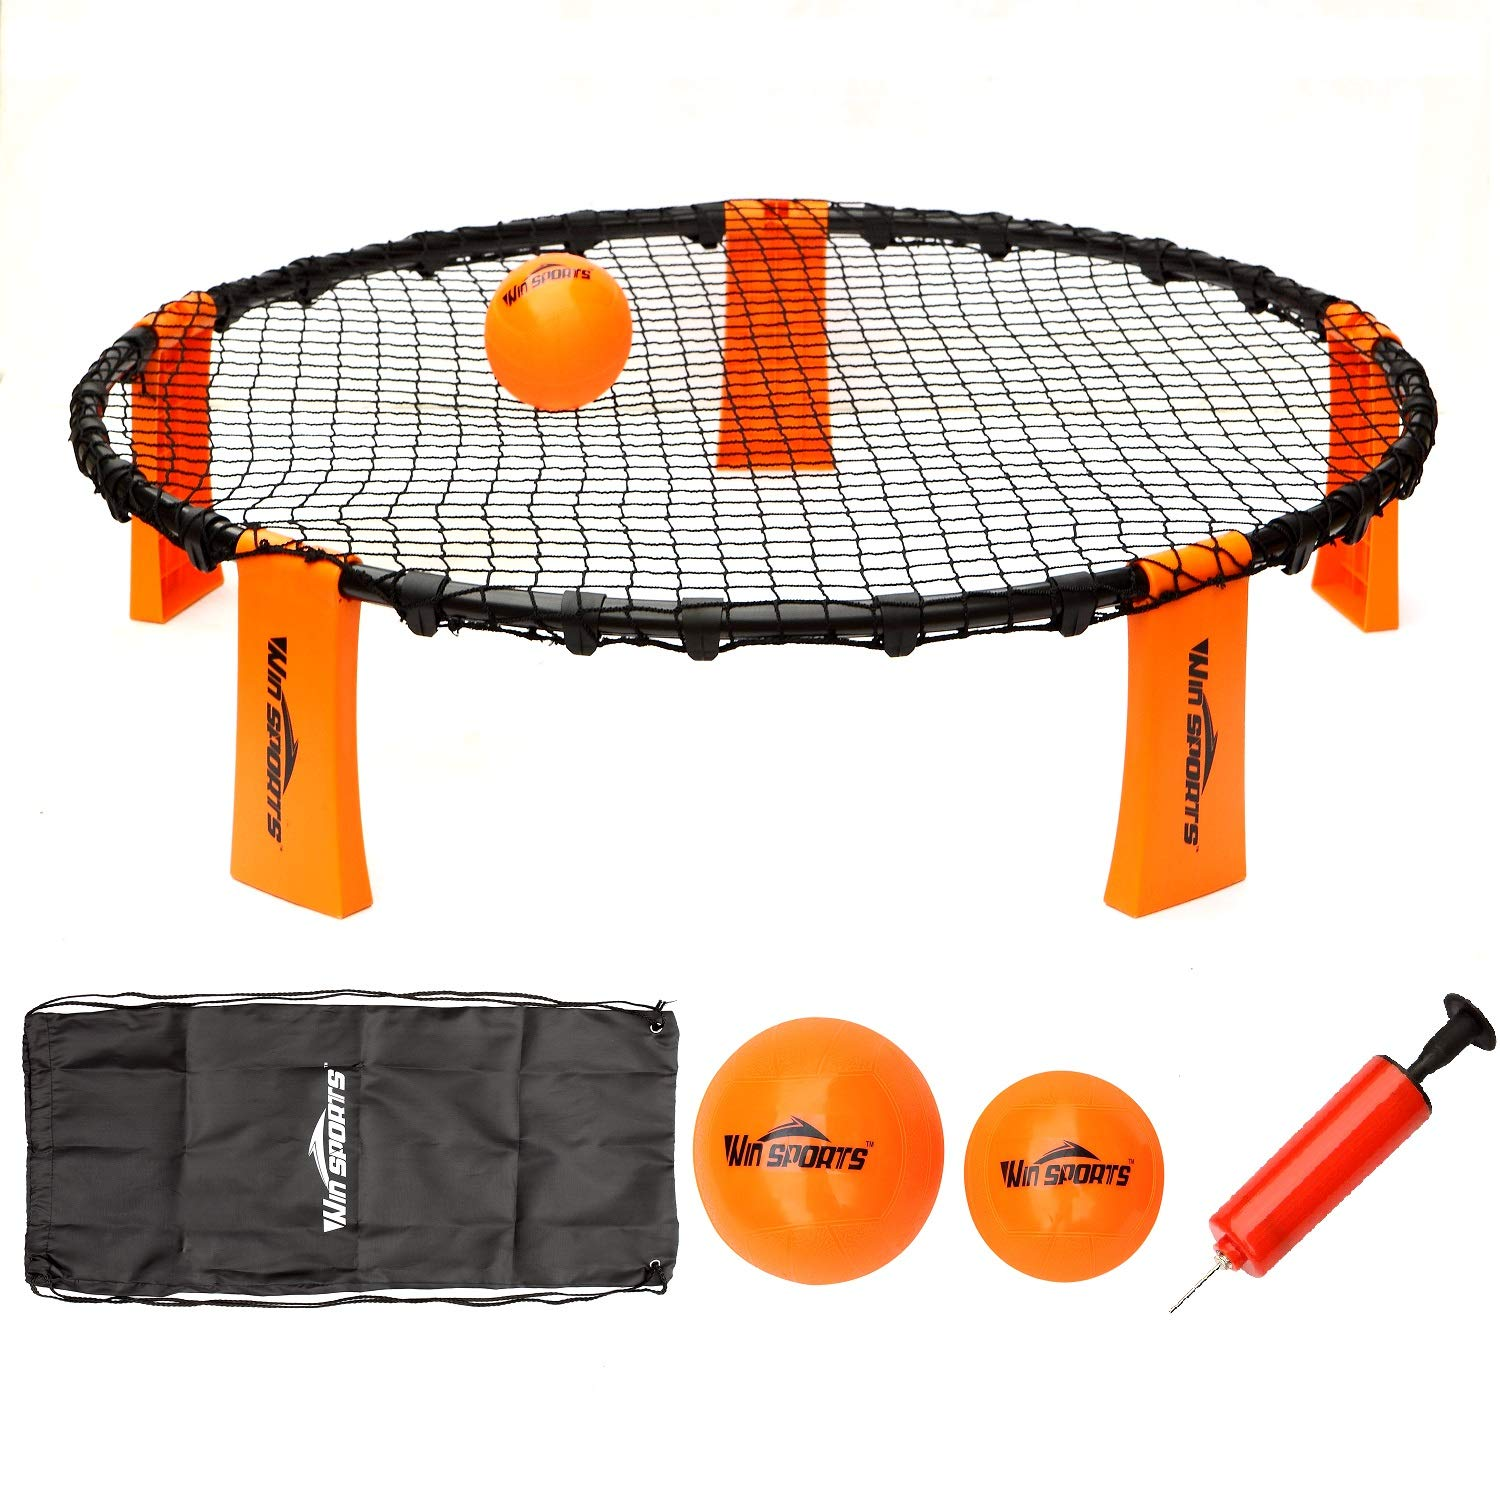 Volleyball Spike Game Set - Slam Ball Game Set - Played Outdoors, Indoors,Beach, Backyard, Tailgate for Kids,Adults,Family - Set Includes 3 Balls,1 Playing Nets,1 Pump,Carry Case,Rules Book by Win SPORTS